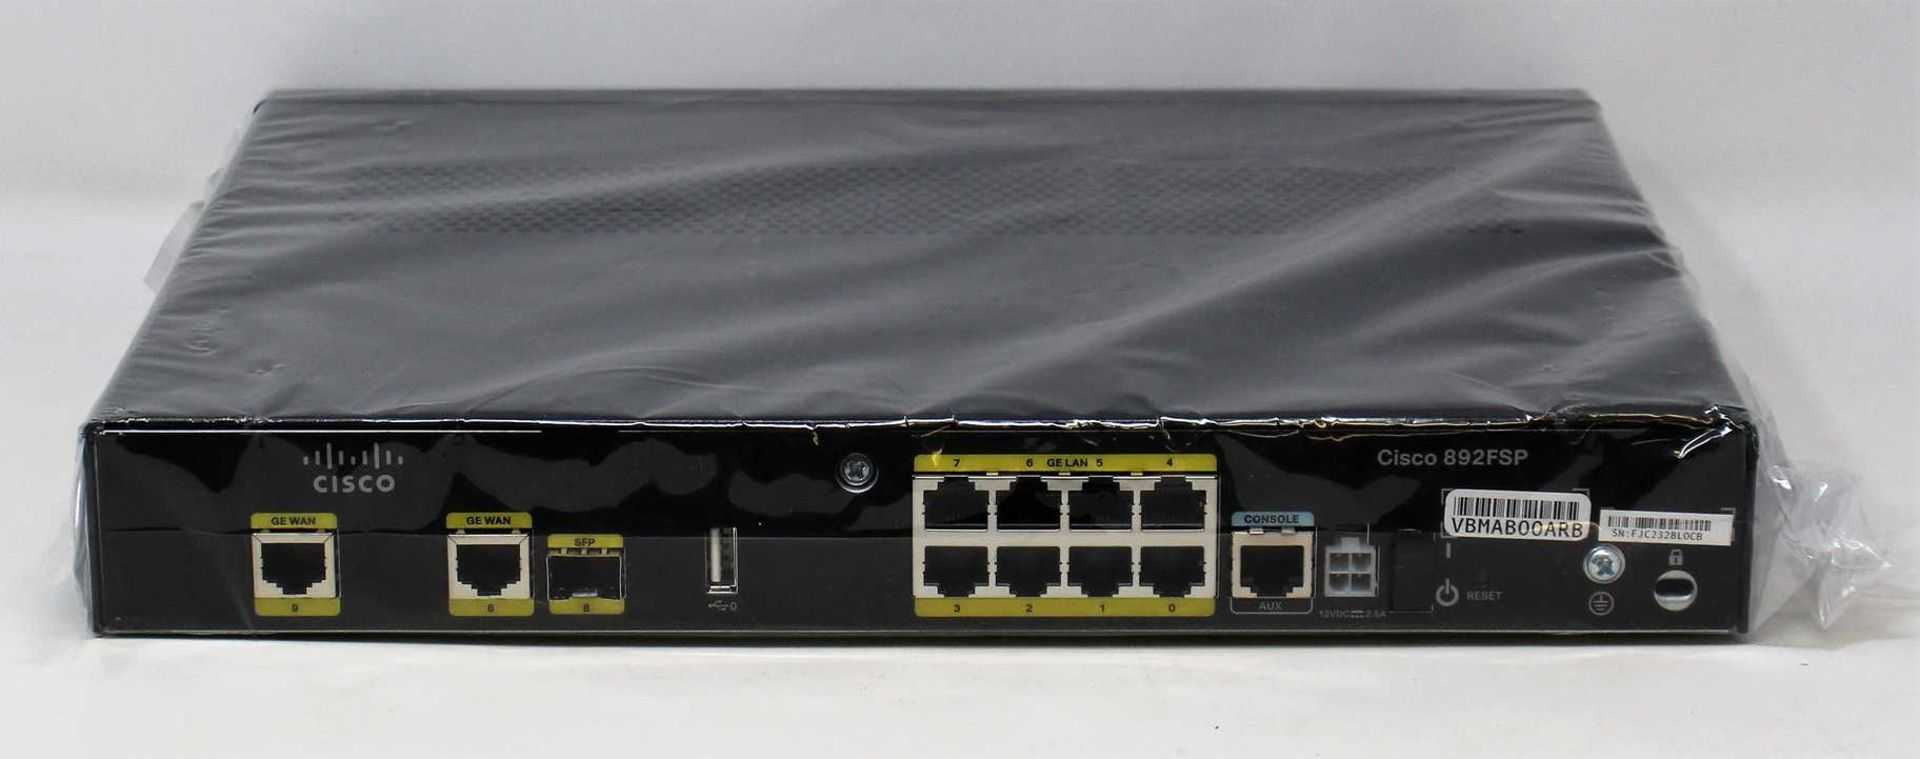 A refurbished Cisco 892FSP Gigabit Ethernet Security Router with SFP (P/N: C892FSP-K9-RF) (Box